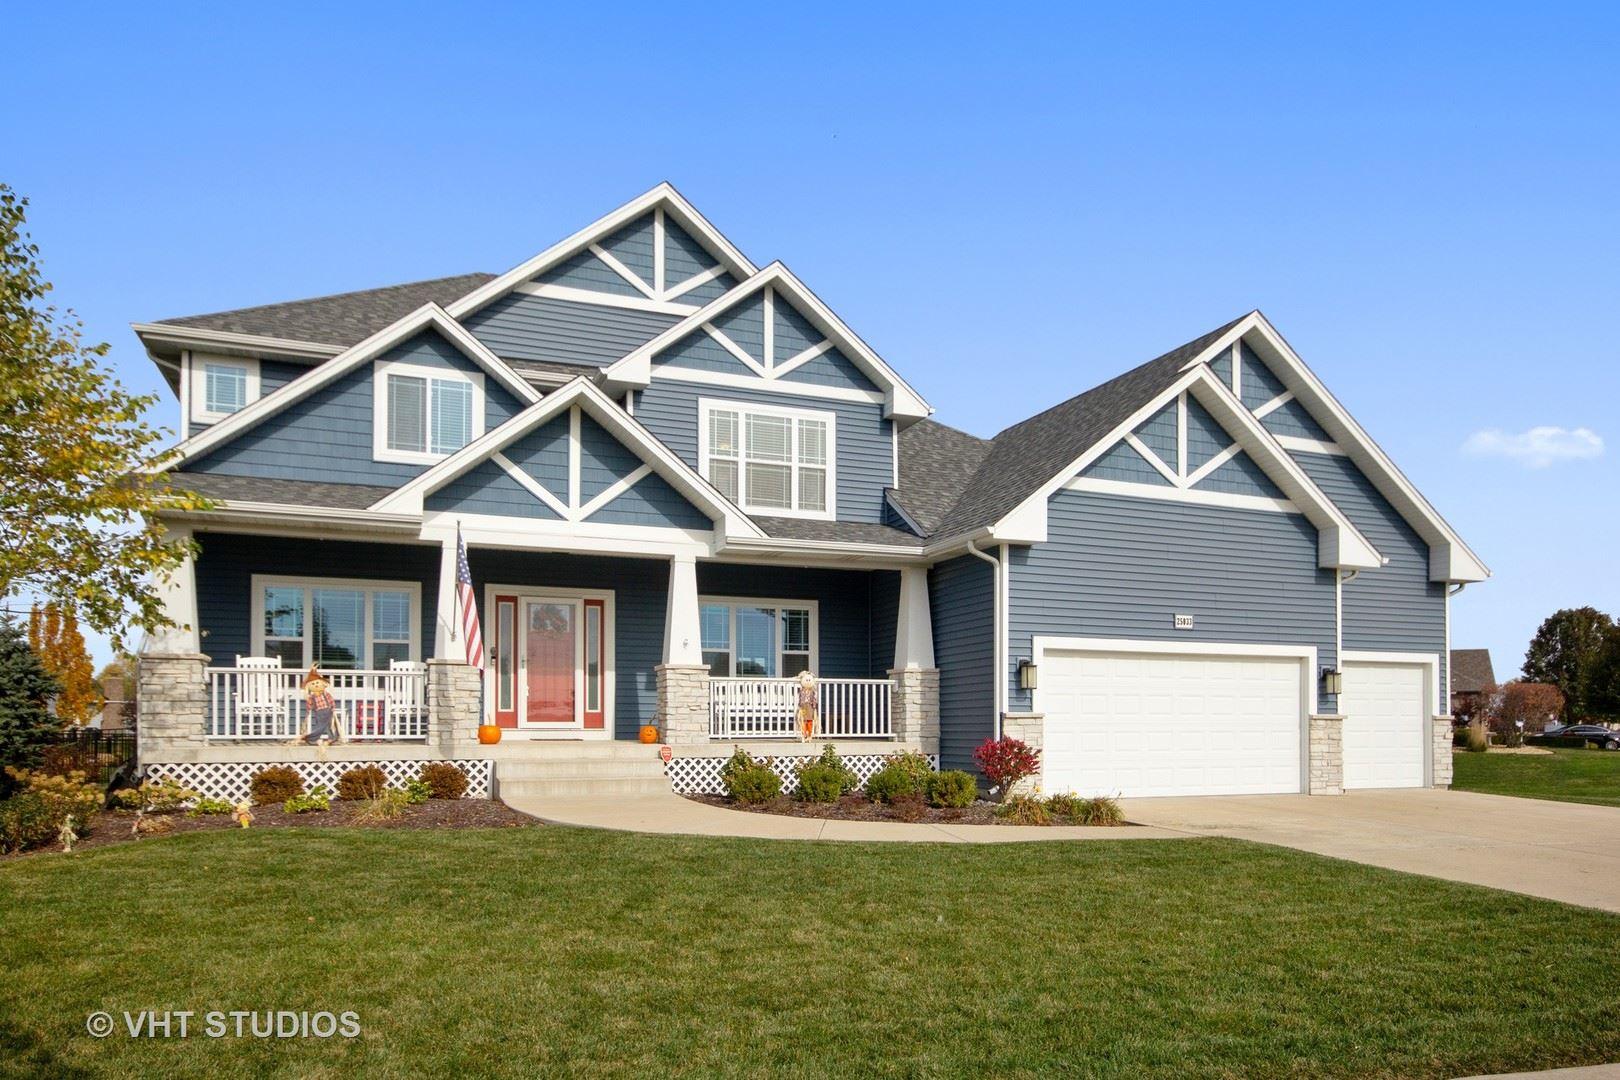 Photo of 25033 Thornberry Drive, Plainfield, IL 60544 (MLS # 10907597)